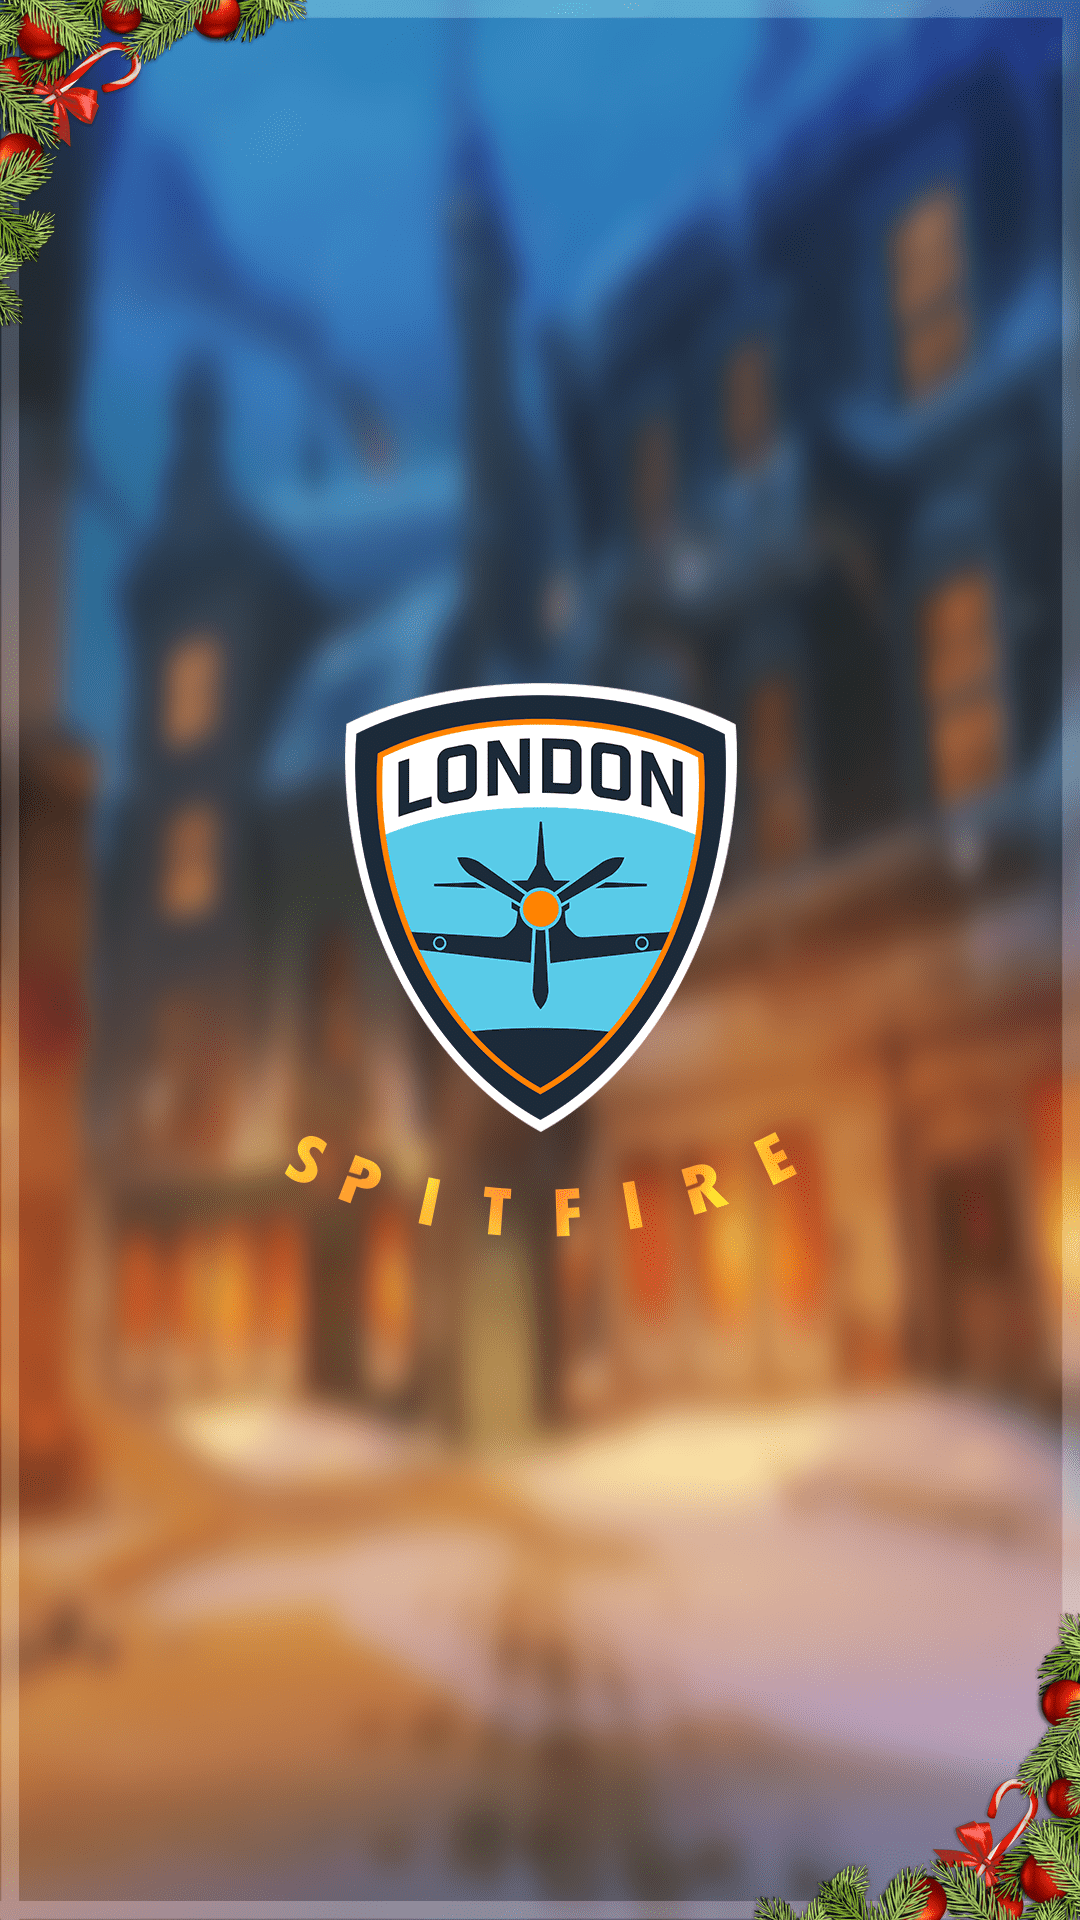 I Made A Festive Phone Wallpaper For Spitfire D